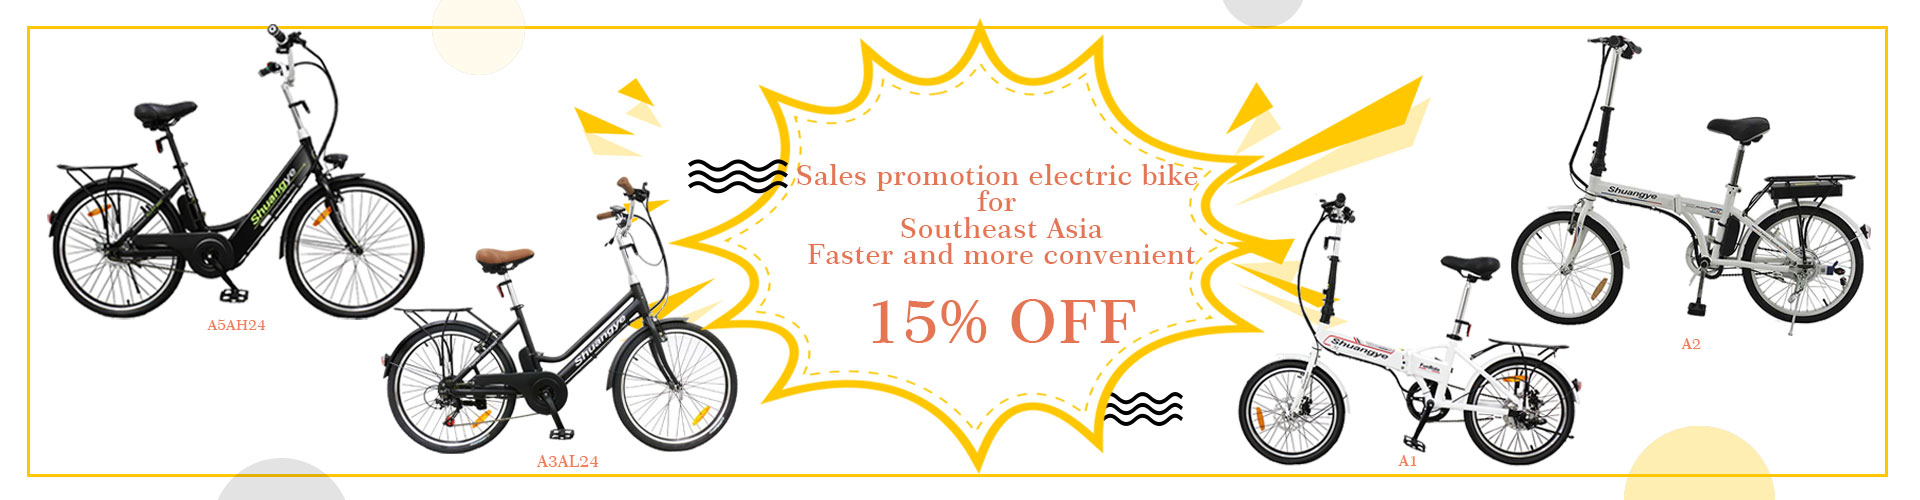 Sales promotion economic city electric bike for Southeast Asia